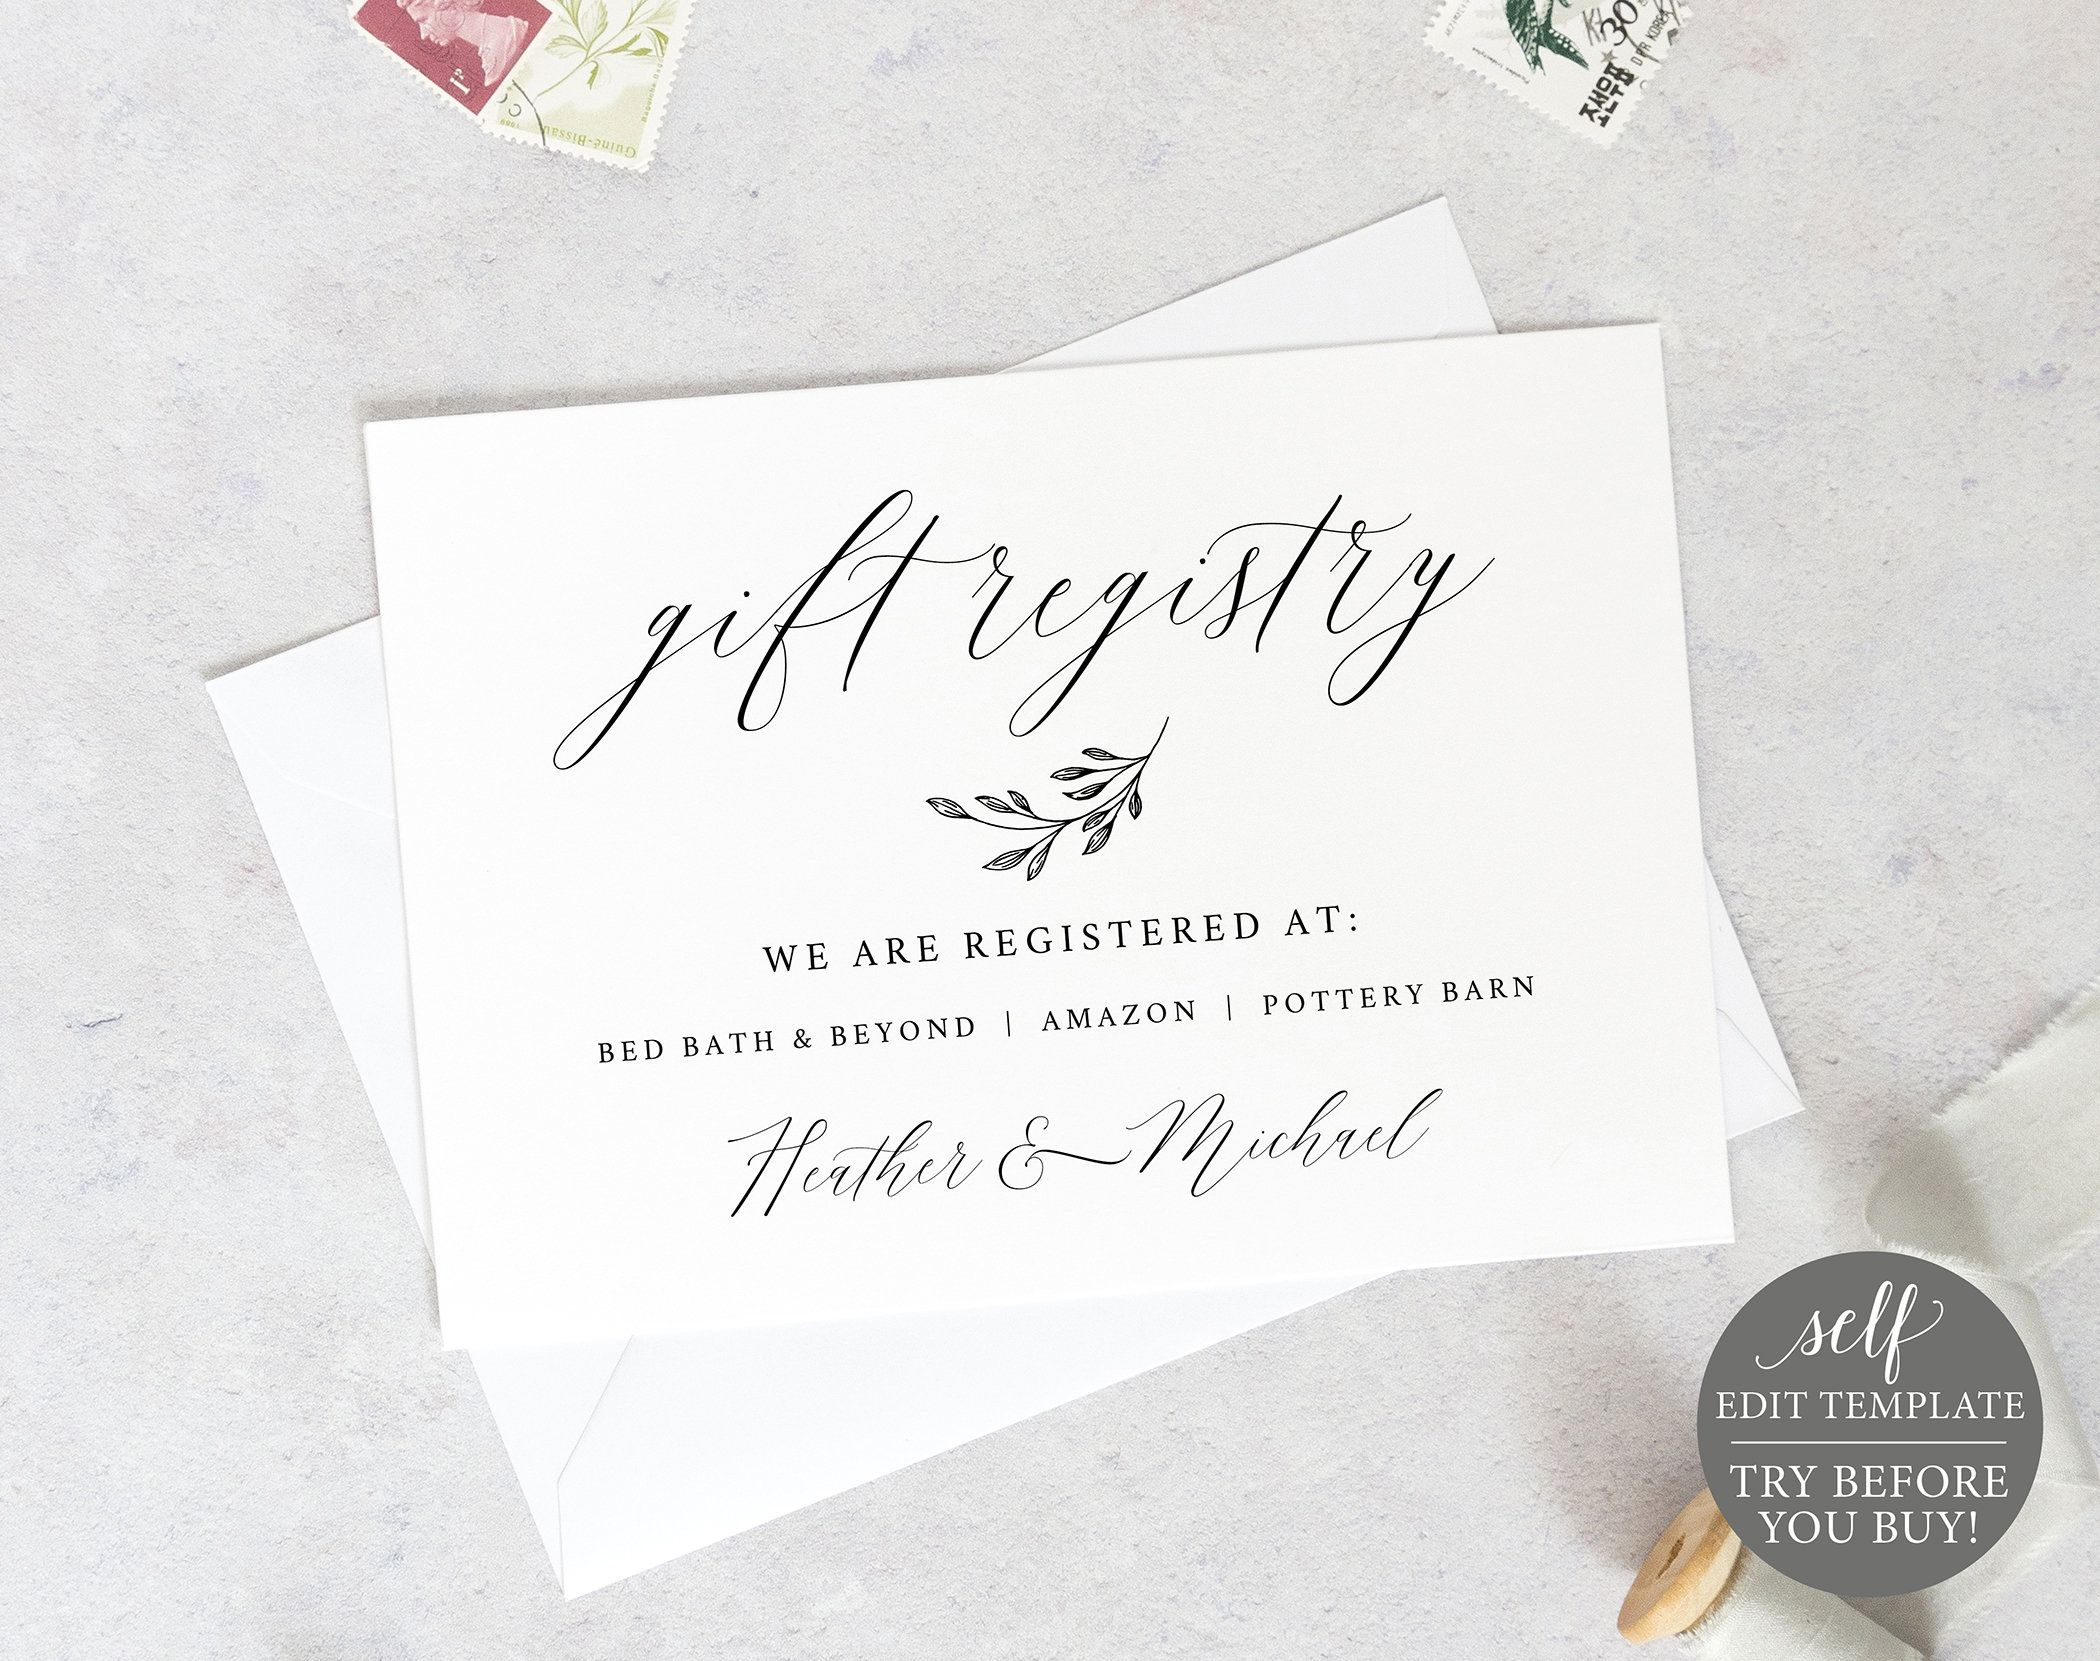 Wedding Registry Card Template, Free Demo Available